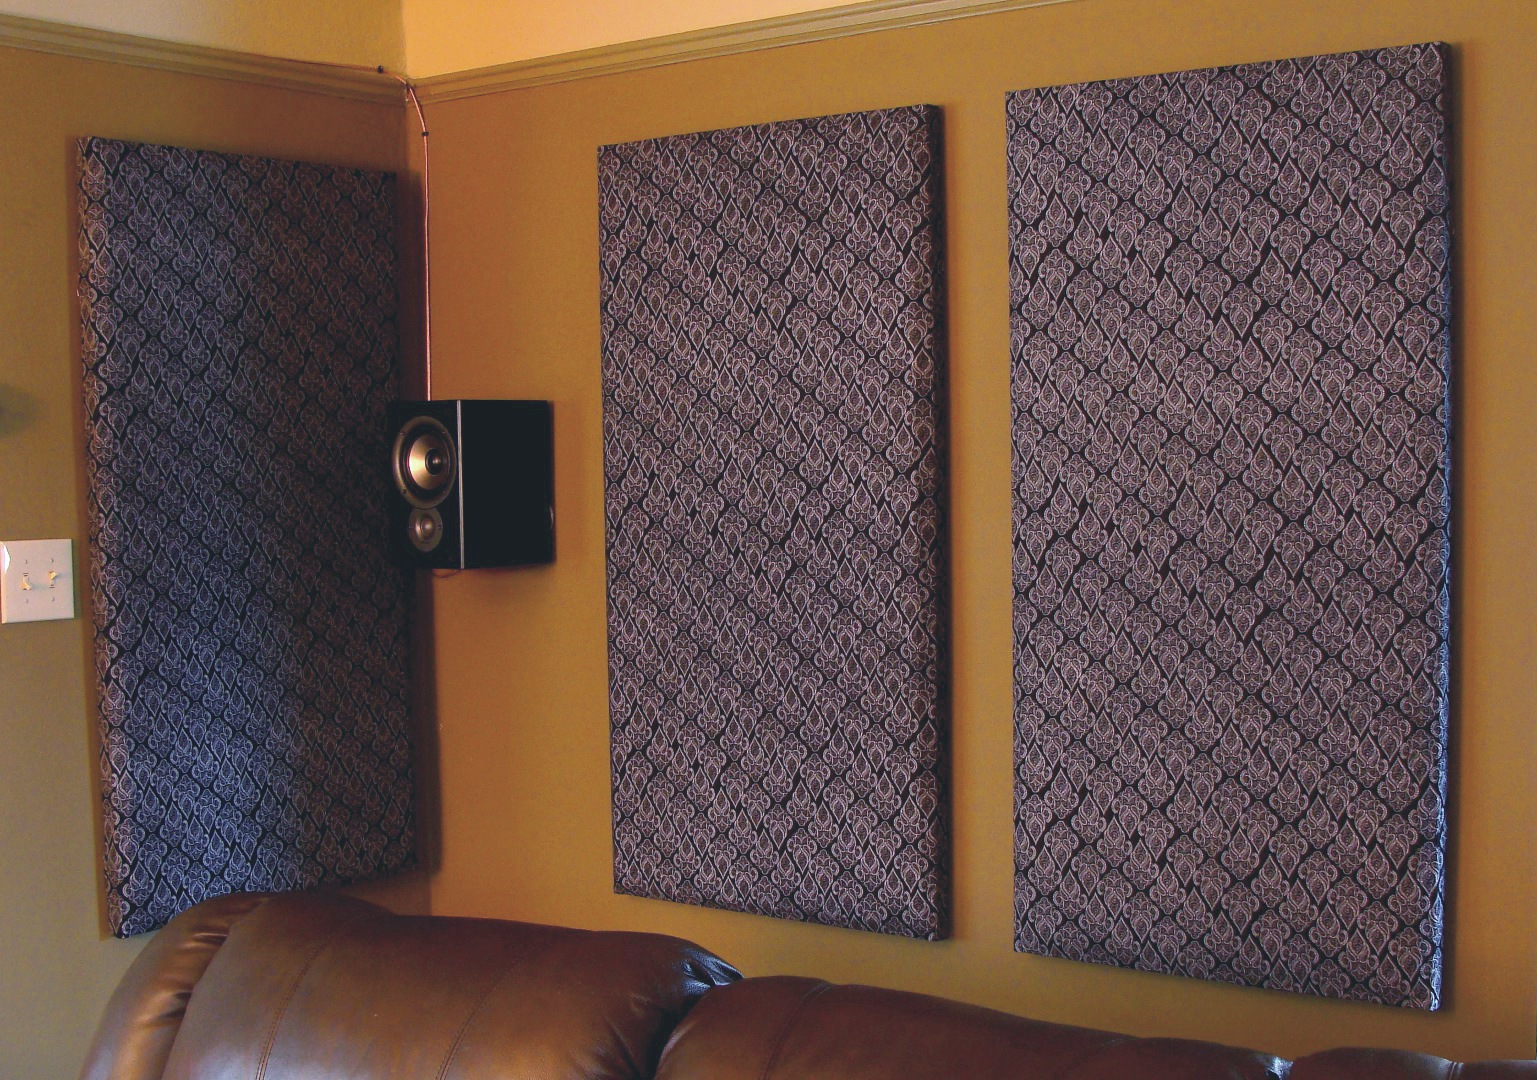 Soundproofing an Apartment to be a Good Neighbor | HomesFeed